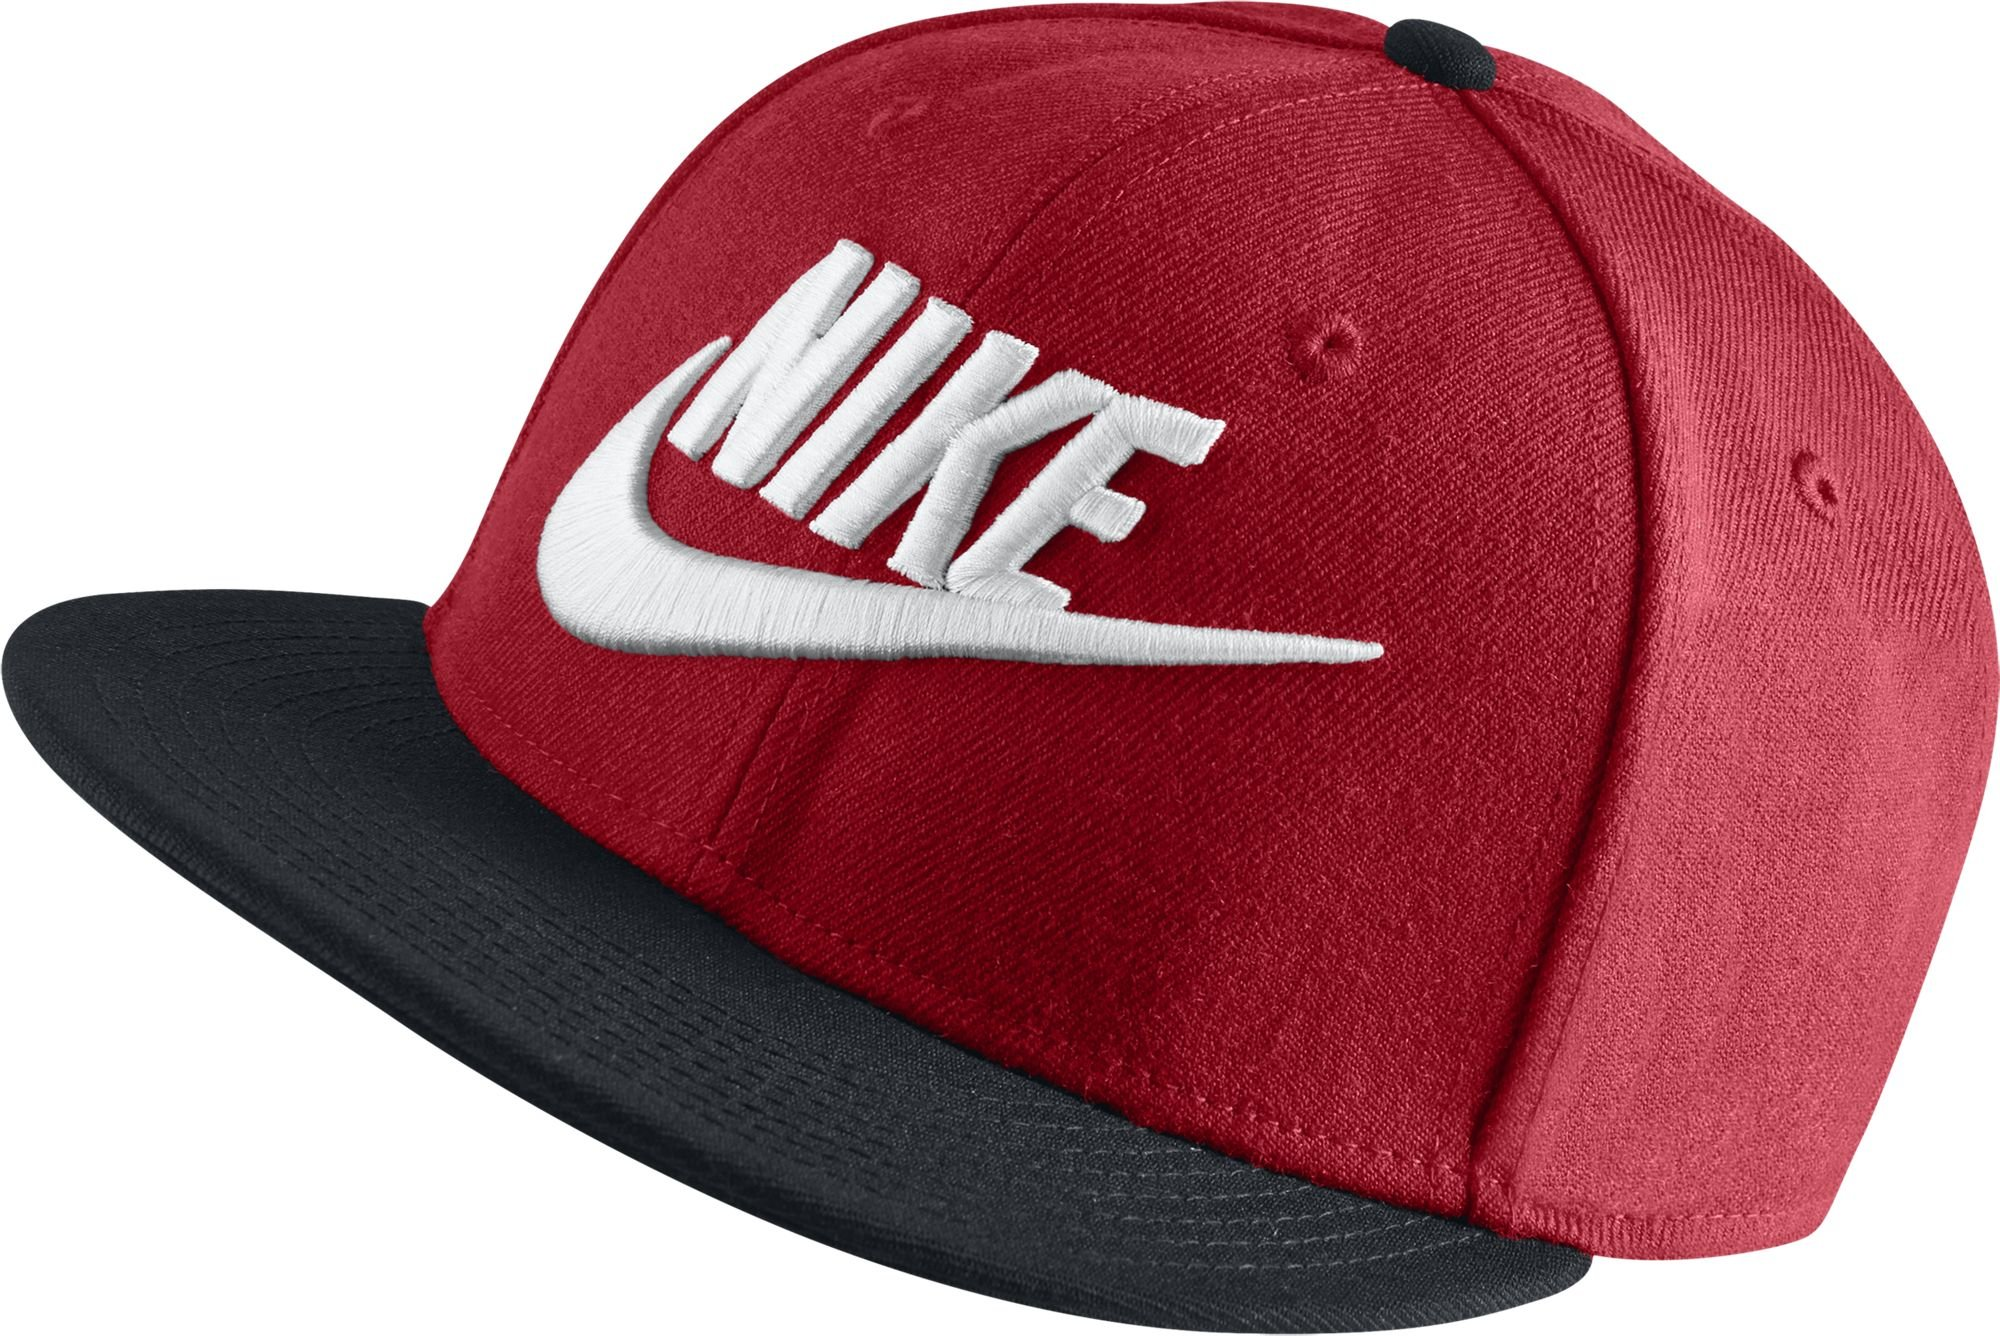 e0d3d0792687 Galleon - Nike Mens Futura True 2 Adjustable Snapback Hat University  Red Black 584169-659